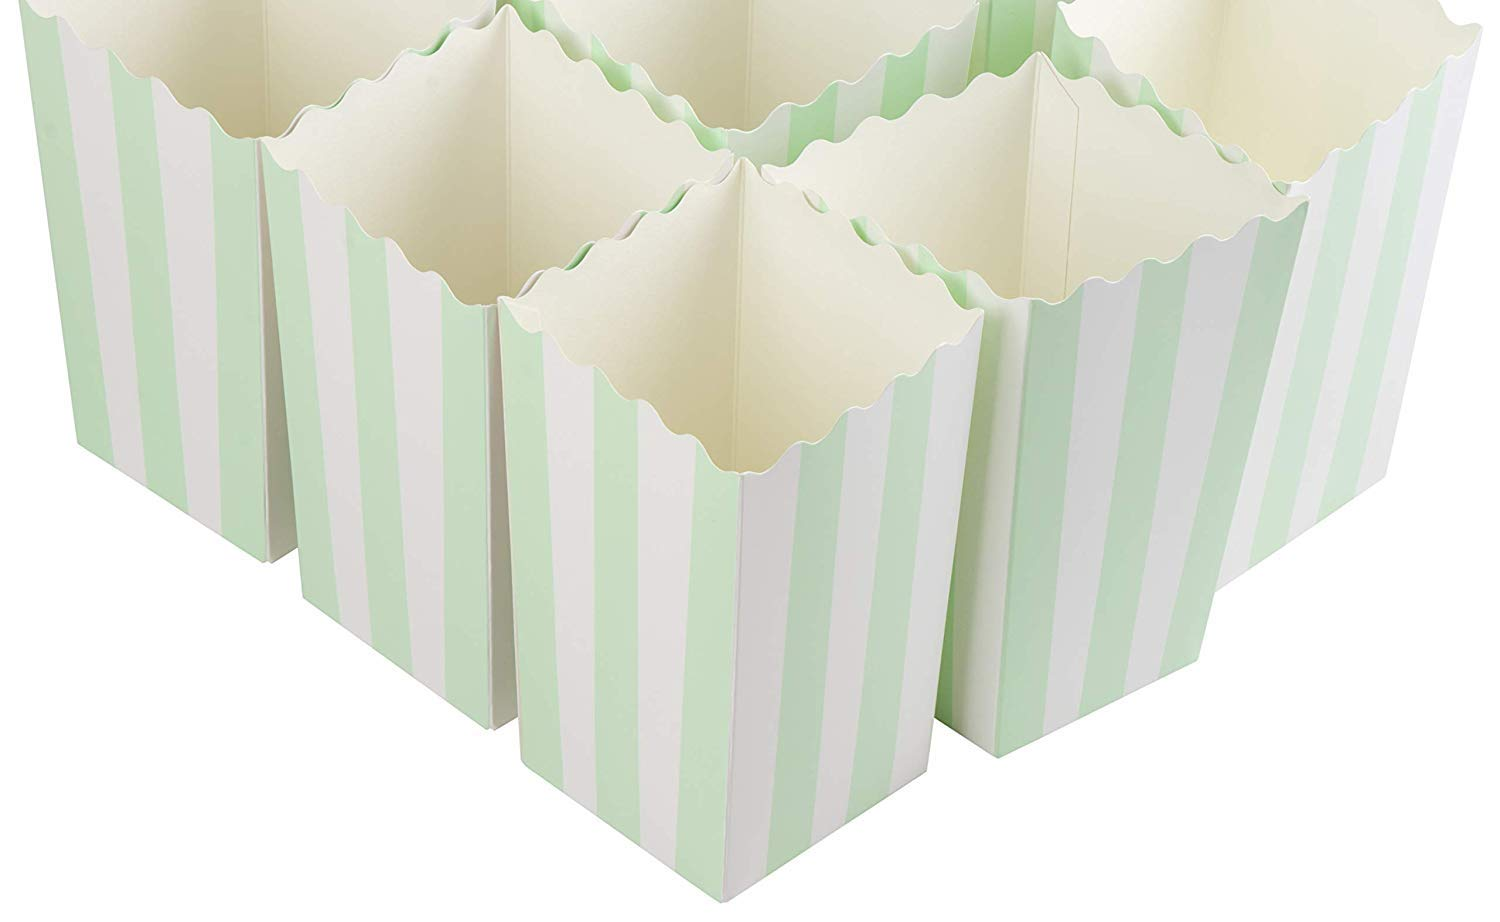 50 Pieces Mint Green Stripe Popcorn Boxes Paper Mini Popcorn Containers Candy Snack Party Favor Boxes for Carnival Parties Birthday Movie Nights